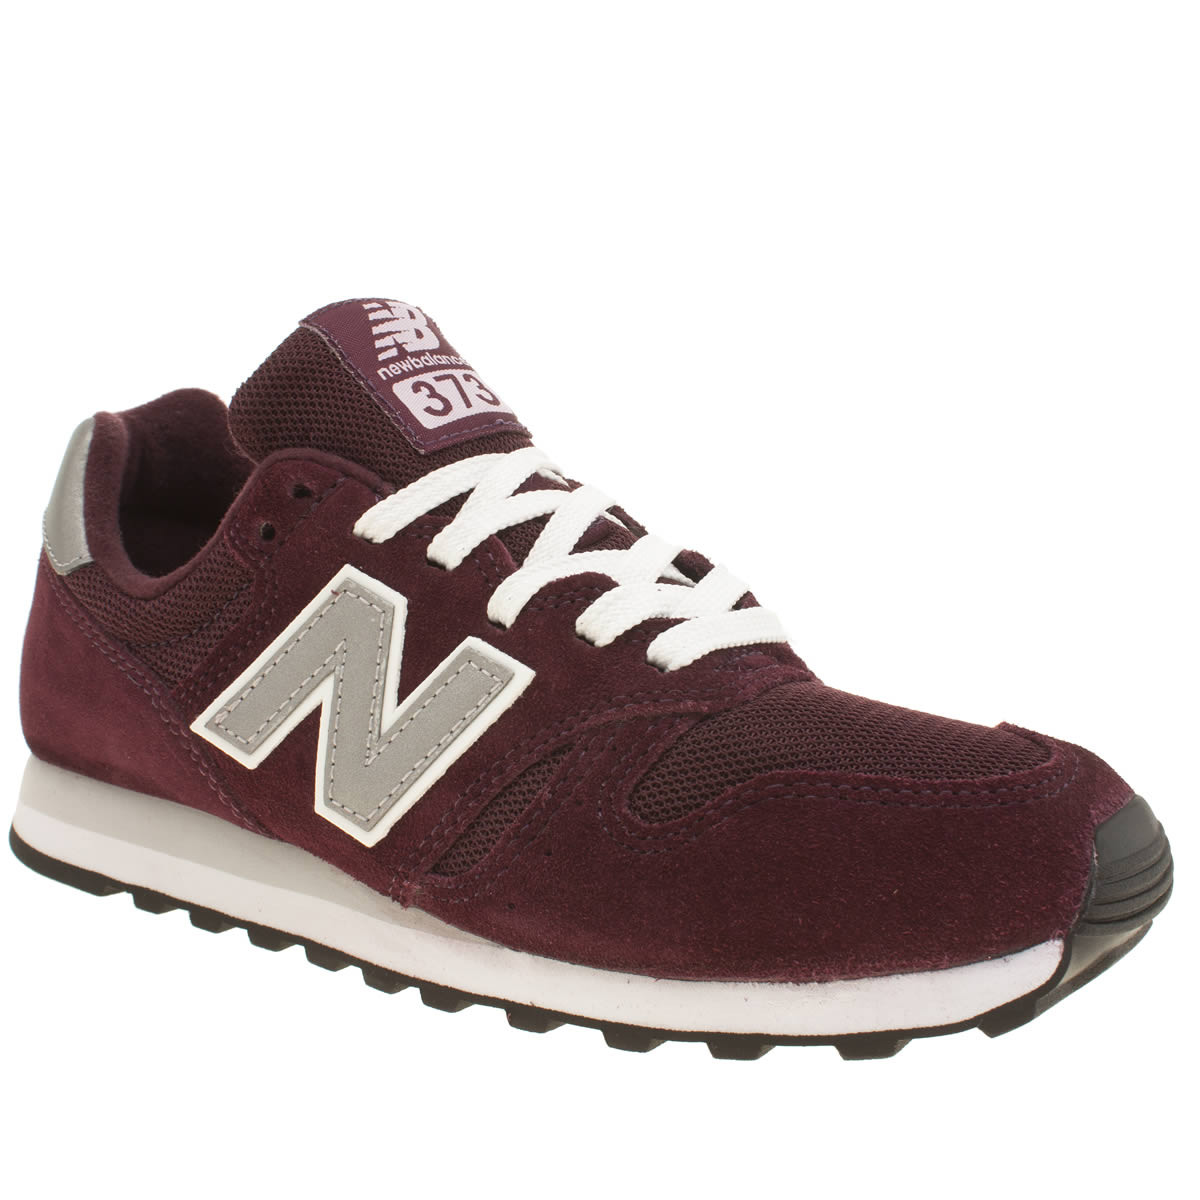 New Balance Womens Trainers Sale